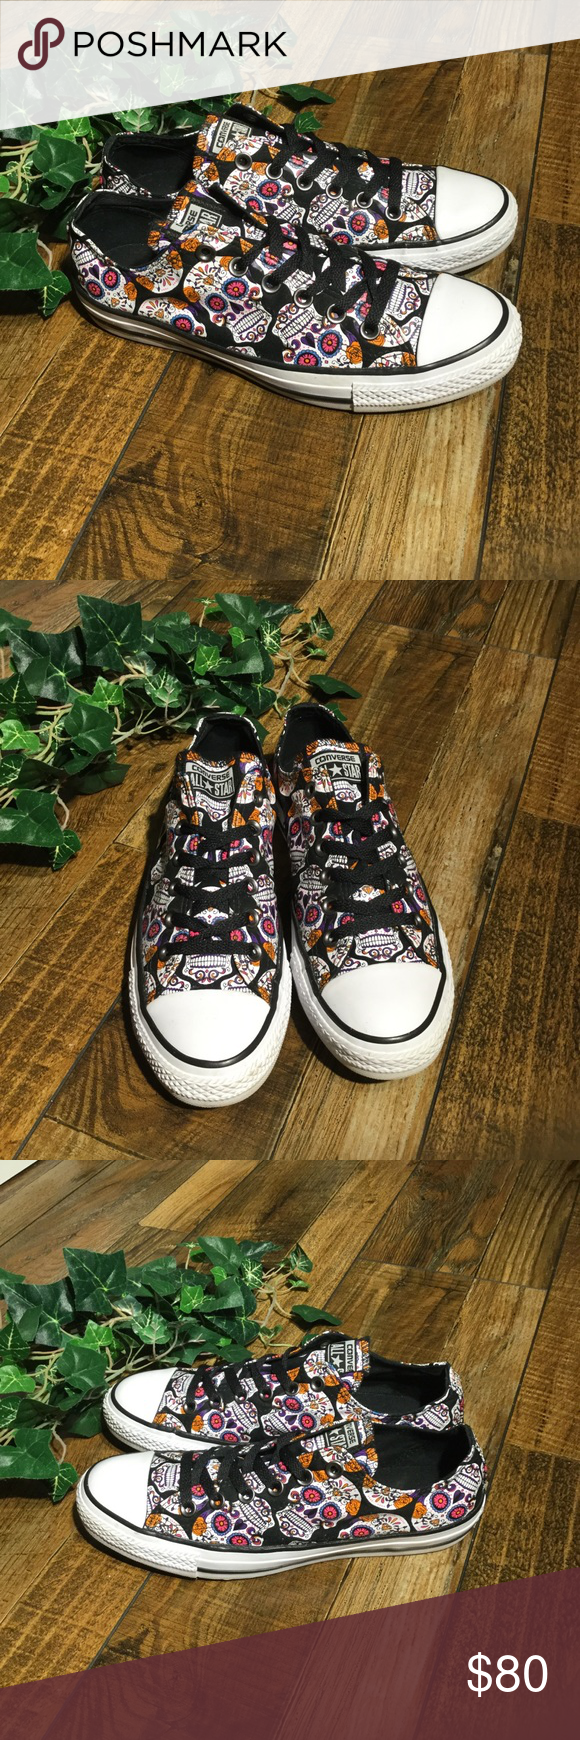 ffcd51cd7c Converse Sugar Skull Sneakers Day of the Dead Sugar Skulls Print   Woman s  8.5   men s